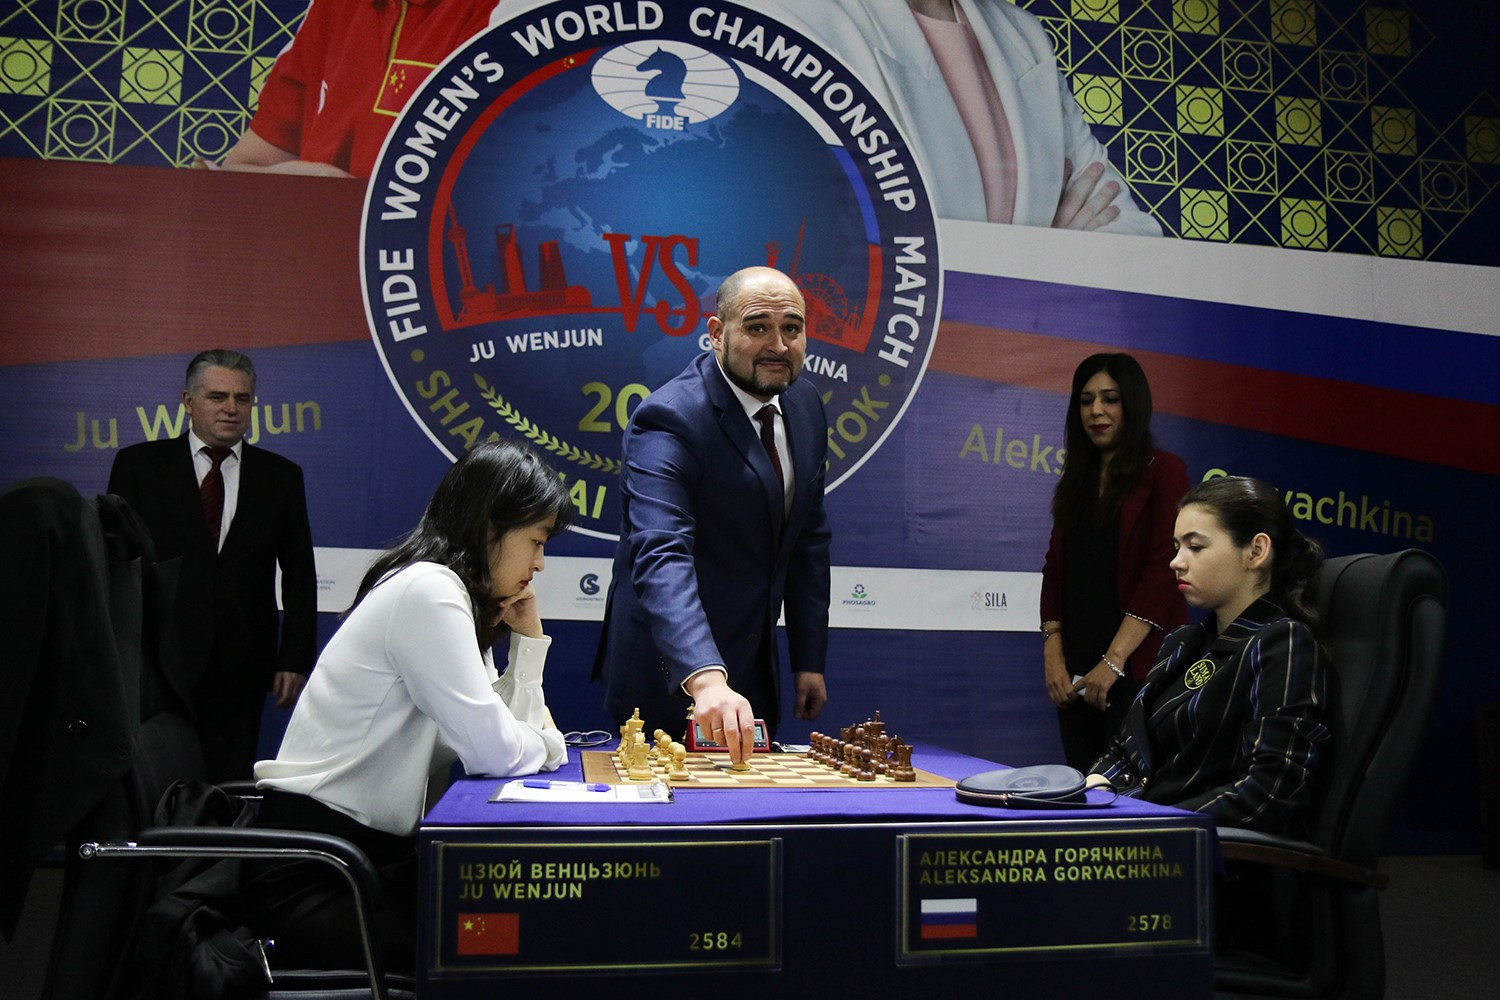 The penultimate game was quickly concluded as a draw ©FIDE